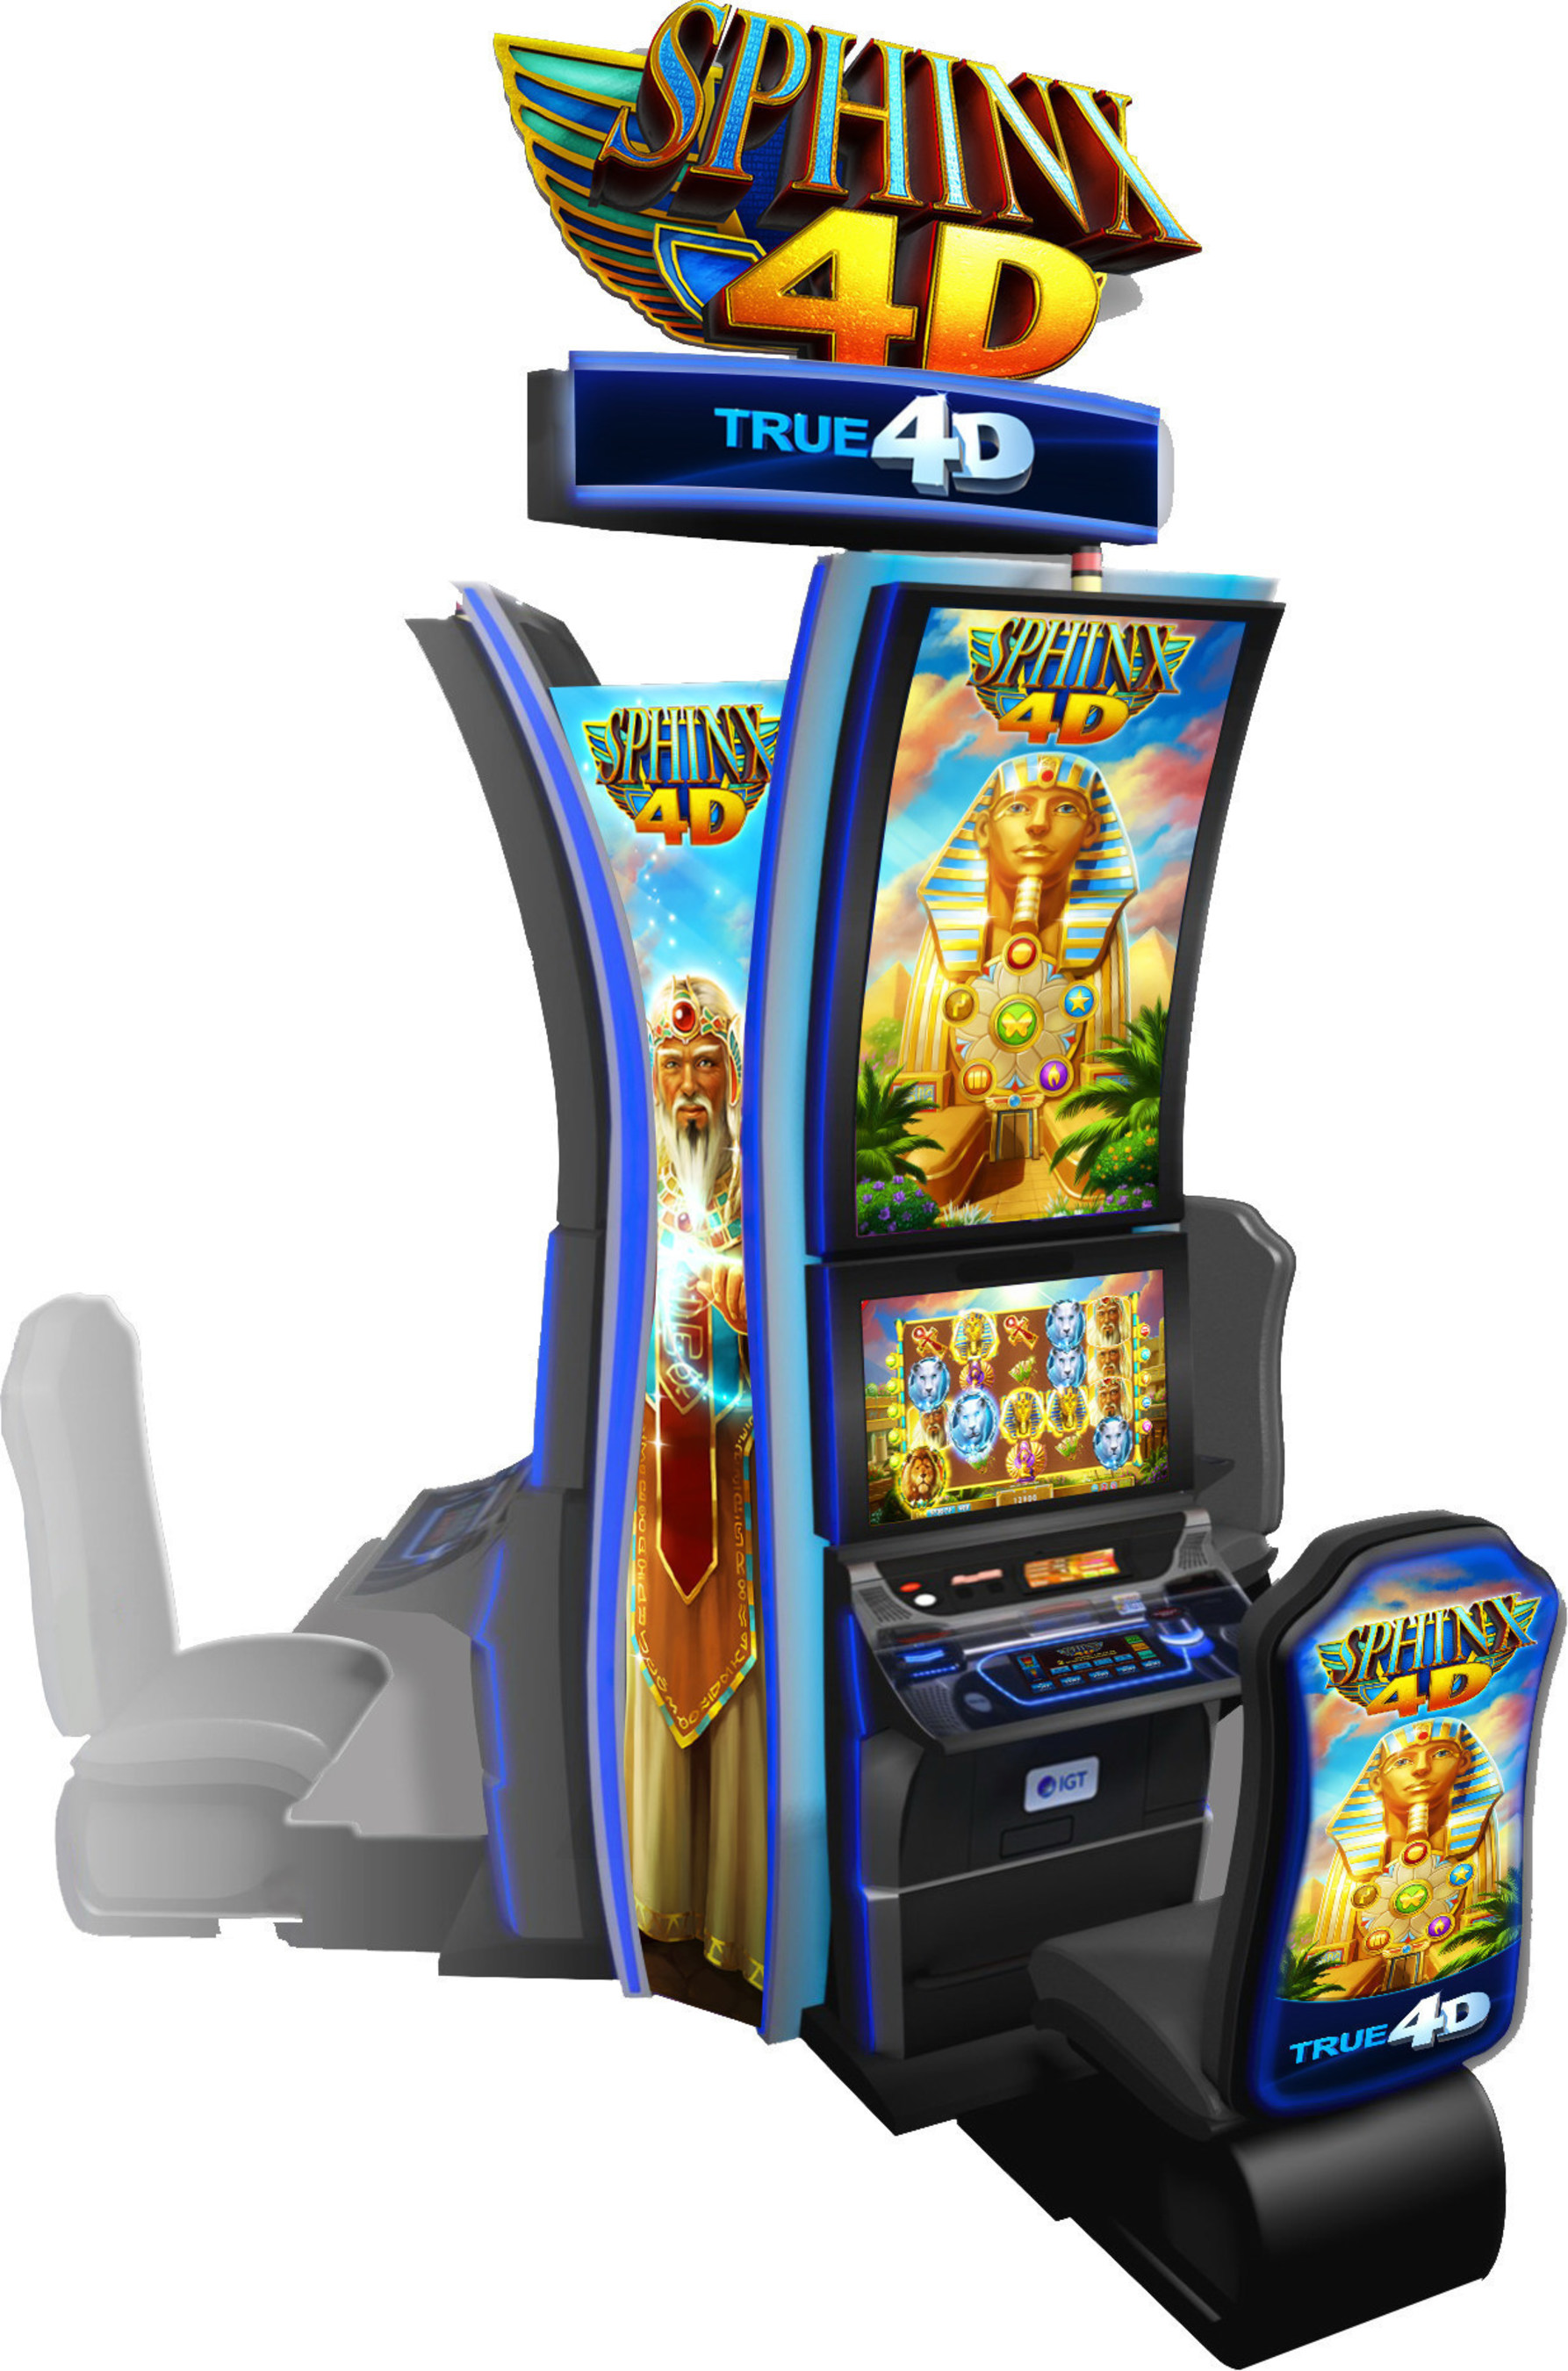 IGT Unveils Major New Innovations at G2E 2016 Including SPHINX 4D